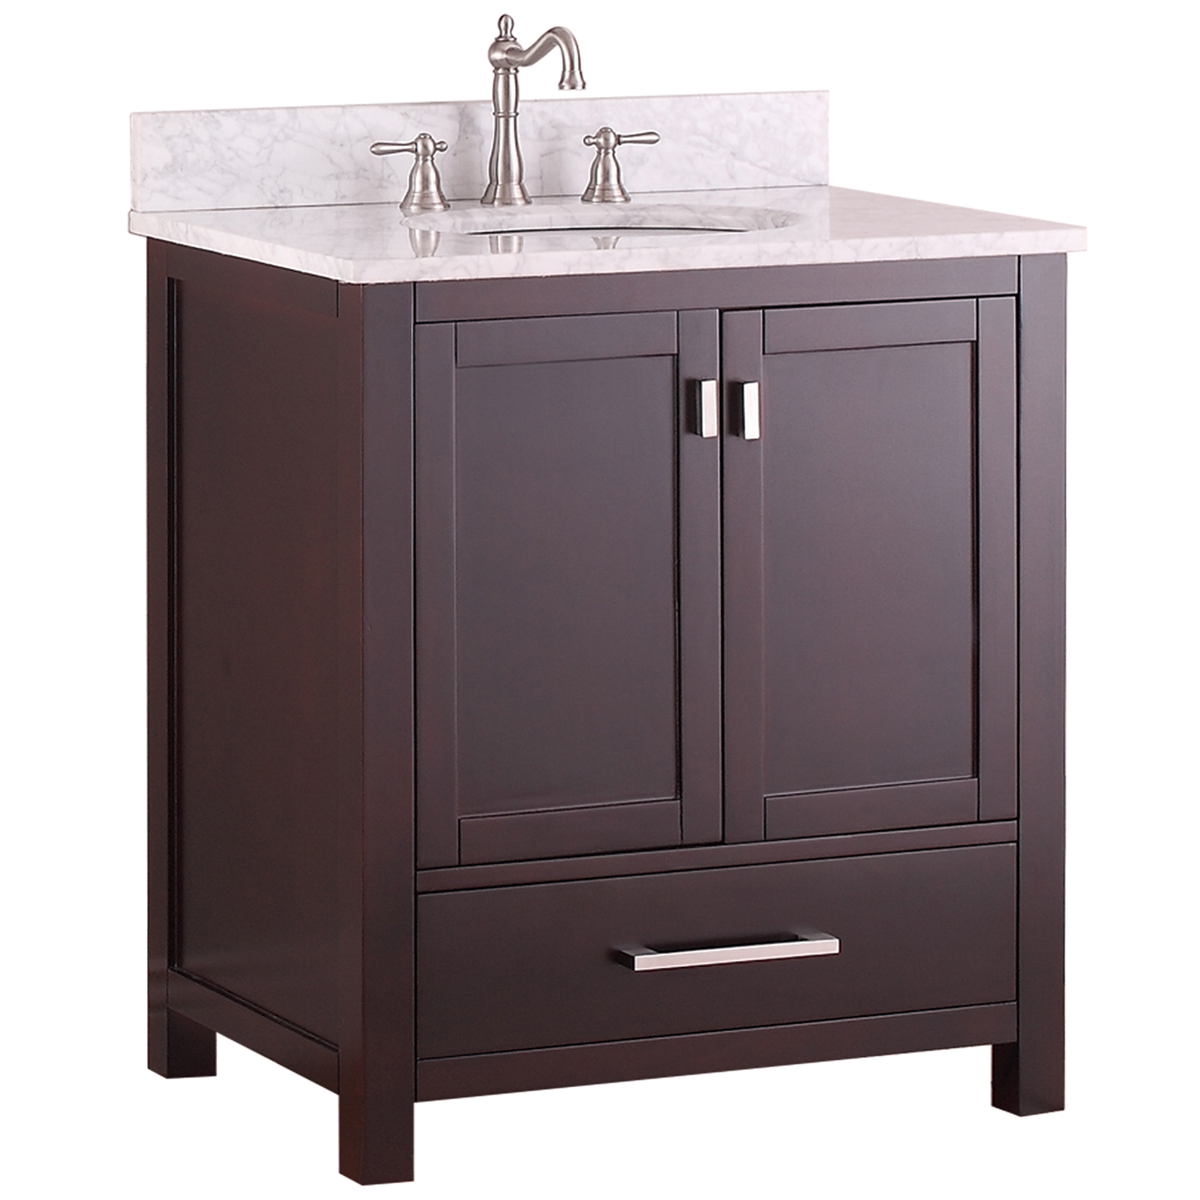 "31"" Toscana Single Bath Vanity - Espresso with Carrera White Marble Top"